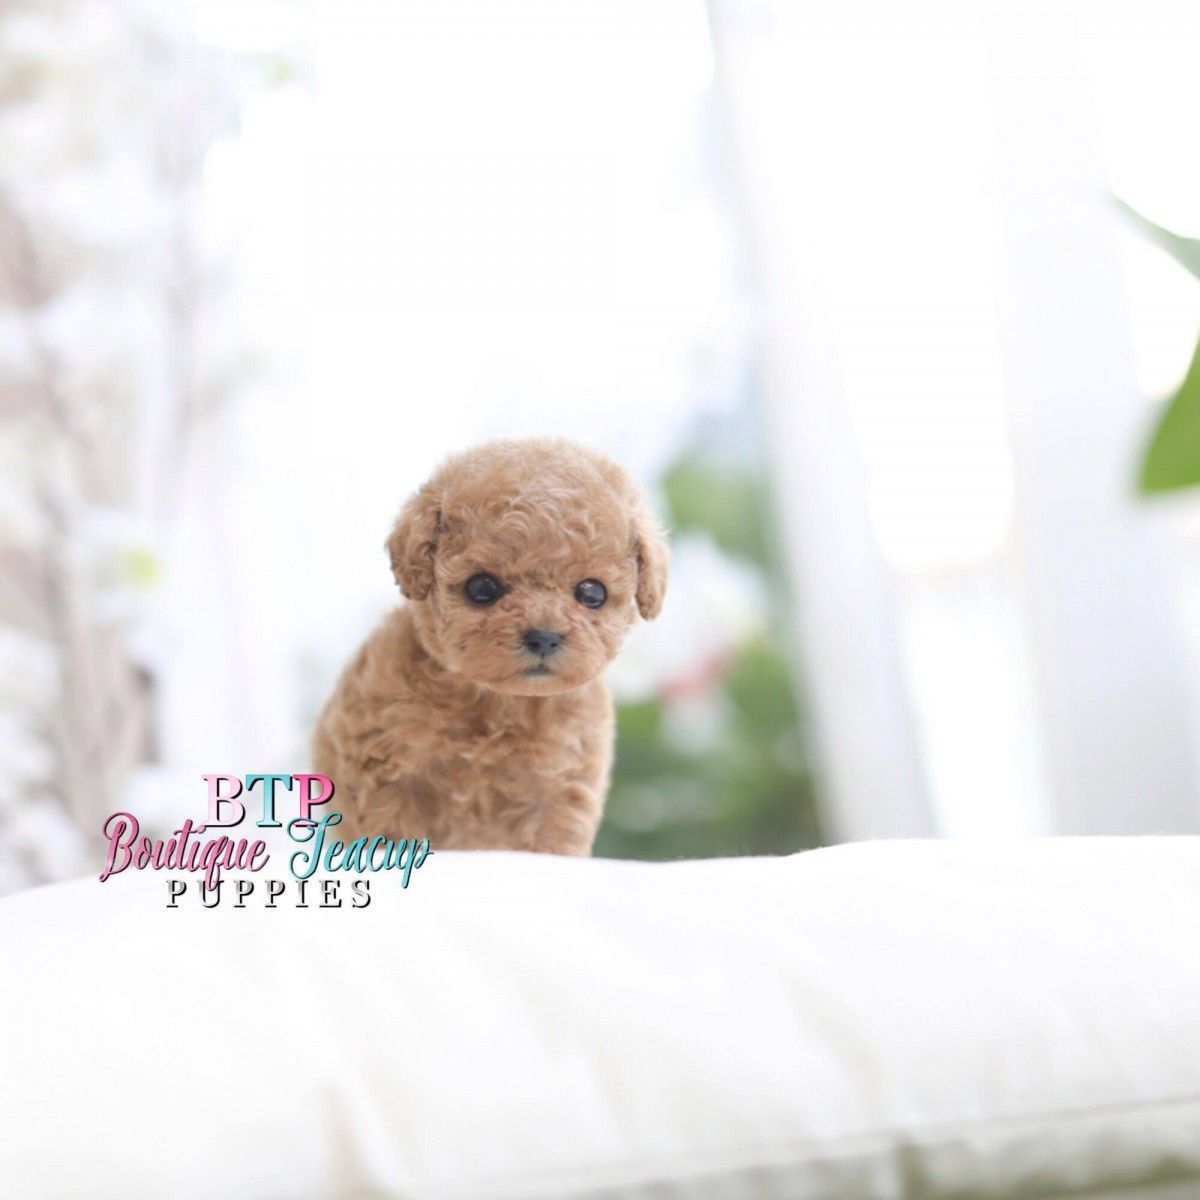 Pocket Puppies & Cute Teacup Dogs For Sale Luxury Quality Puppies